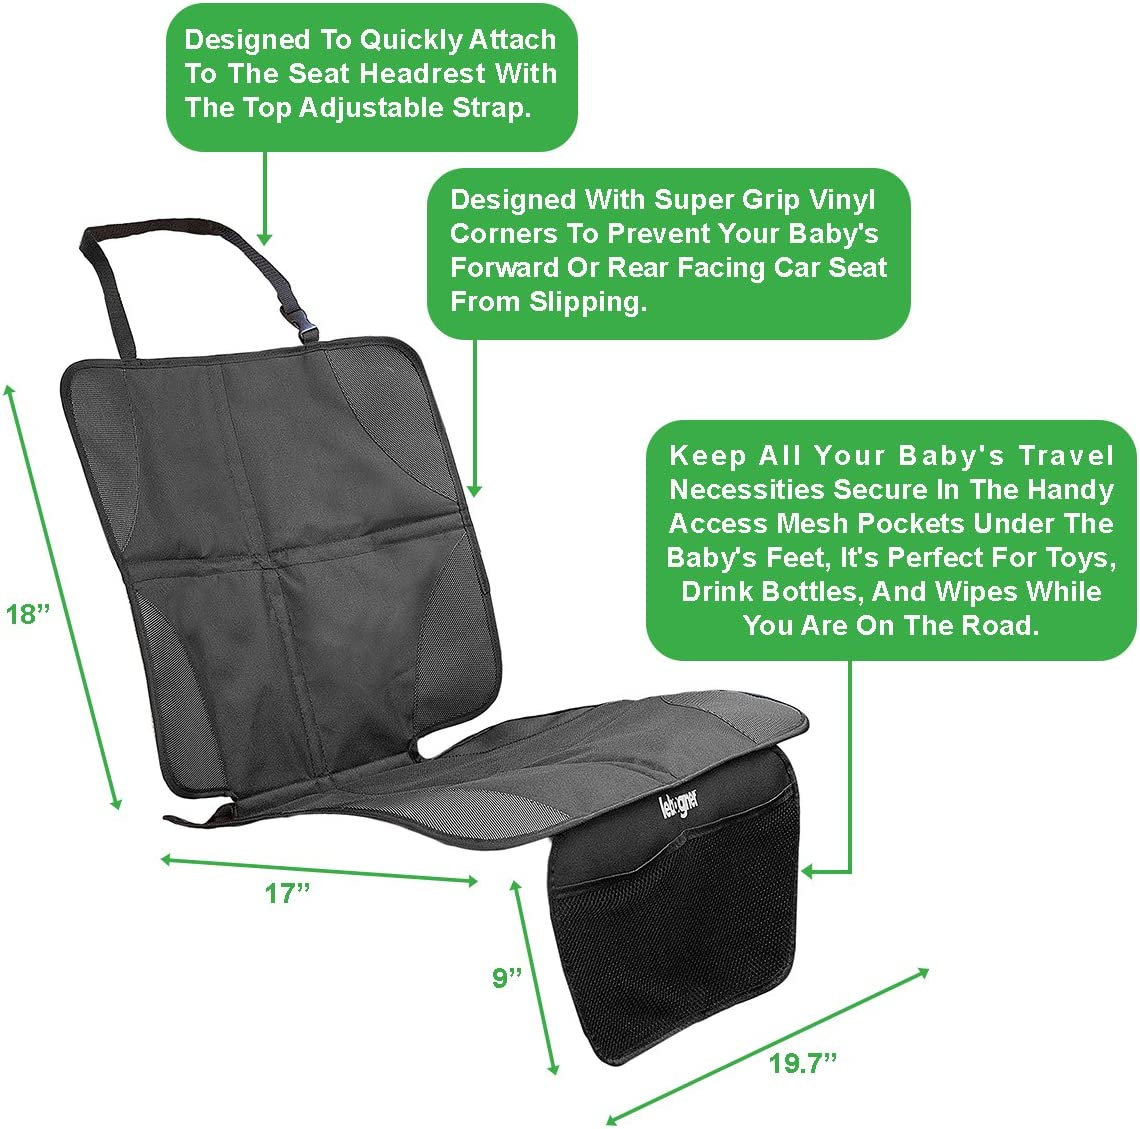 Or From Your Pets Protects Your Auto Leather And Upholstery Seats From Damage Luxury Mat Cover Protector To Keep Nice And Clean Under Your Baby/'s Infant Car Booster Seat Lebogner Car Seat Protector